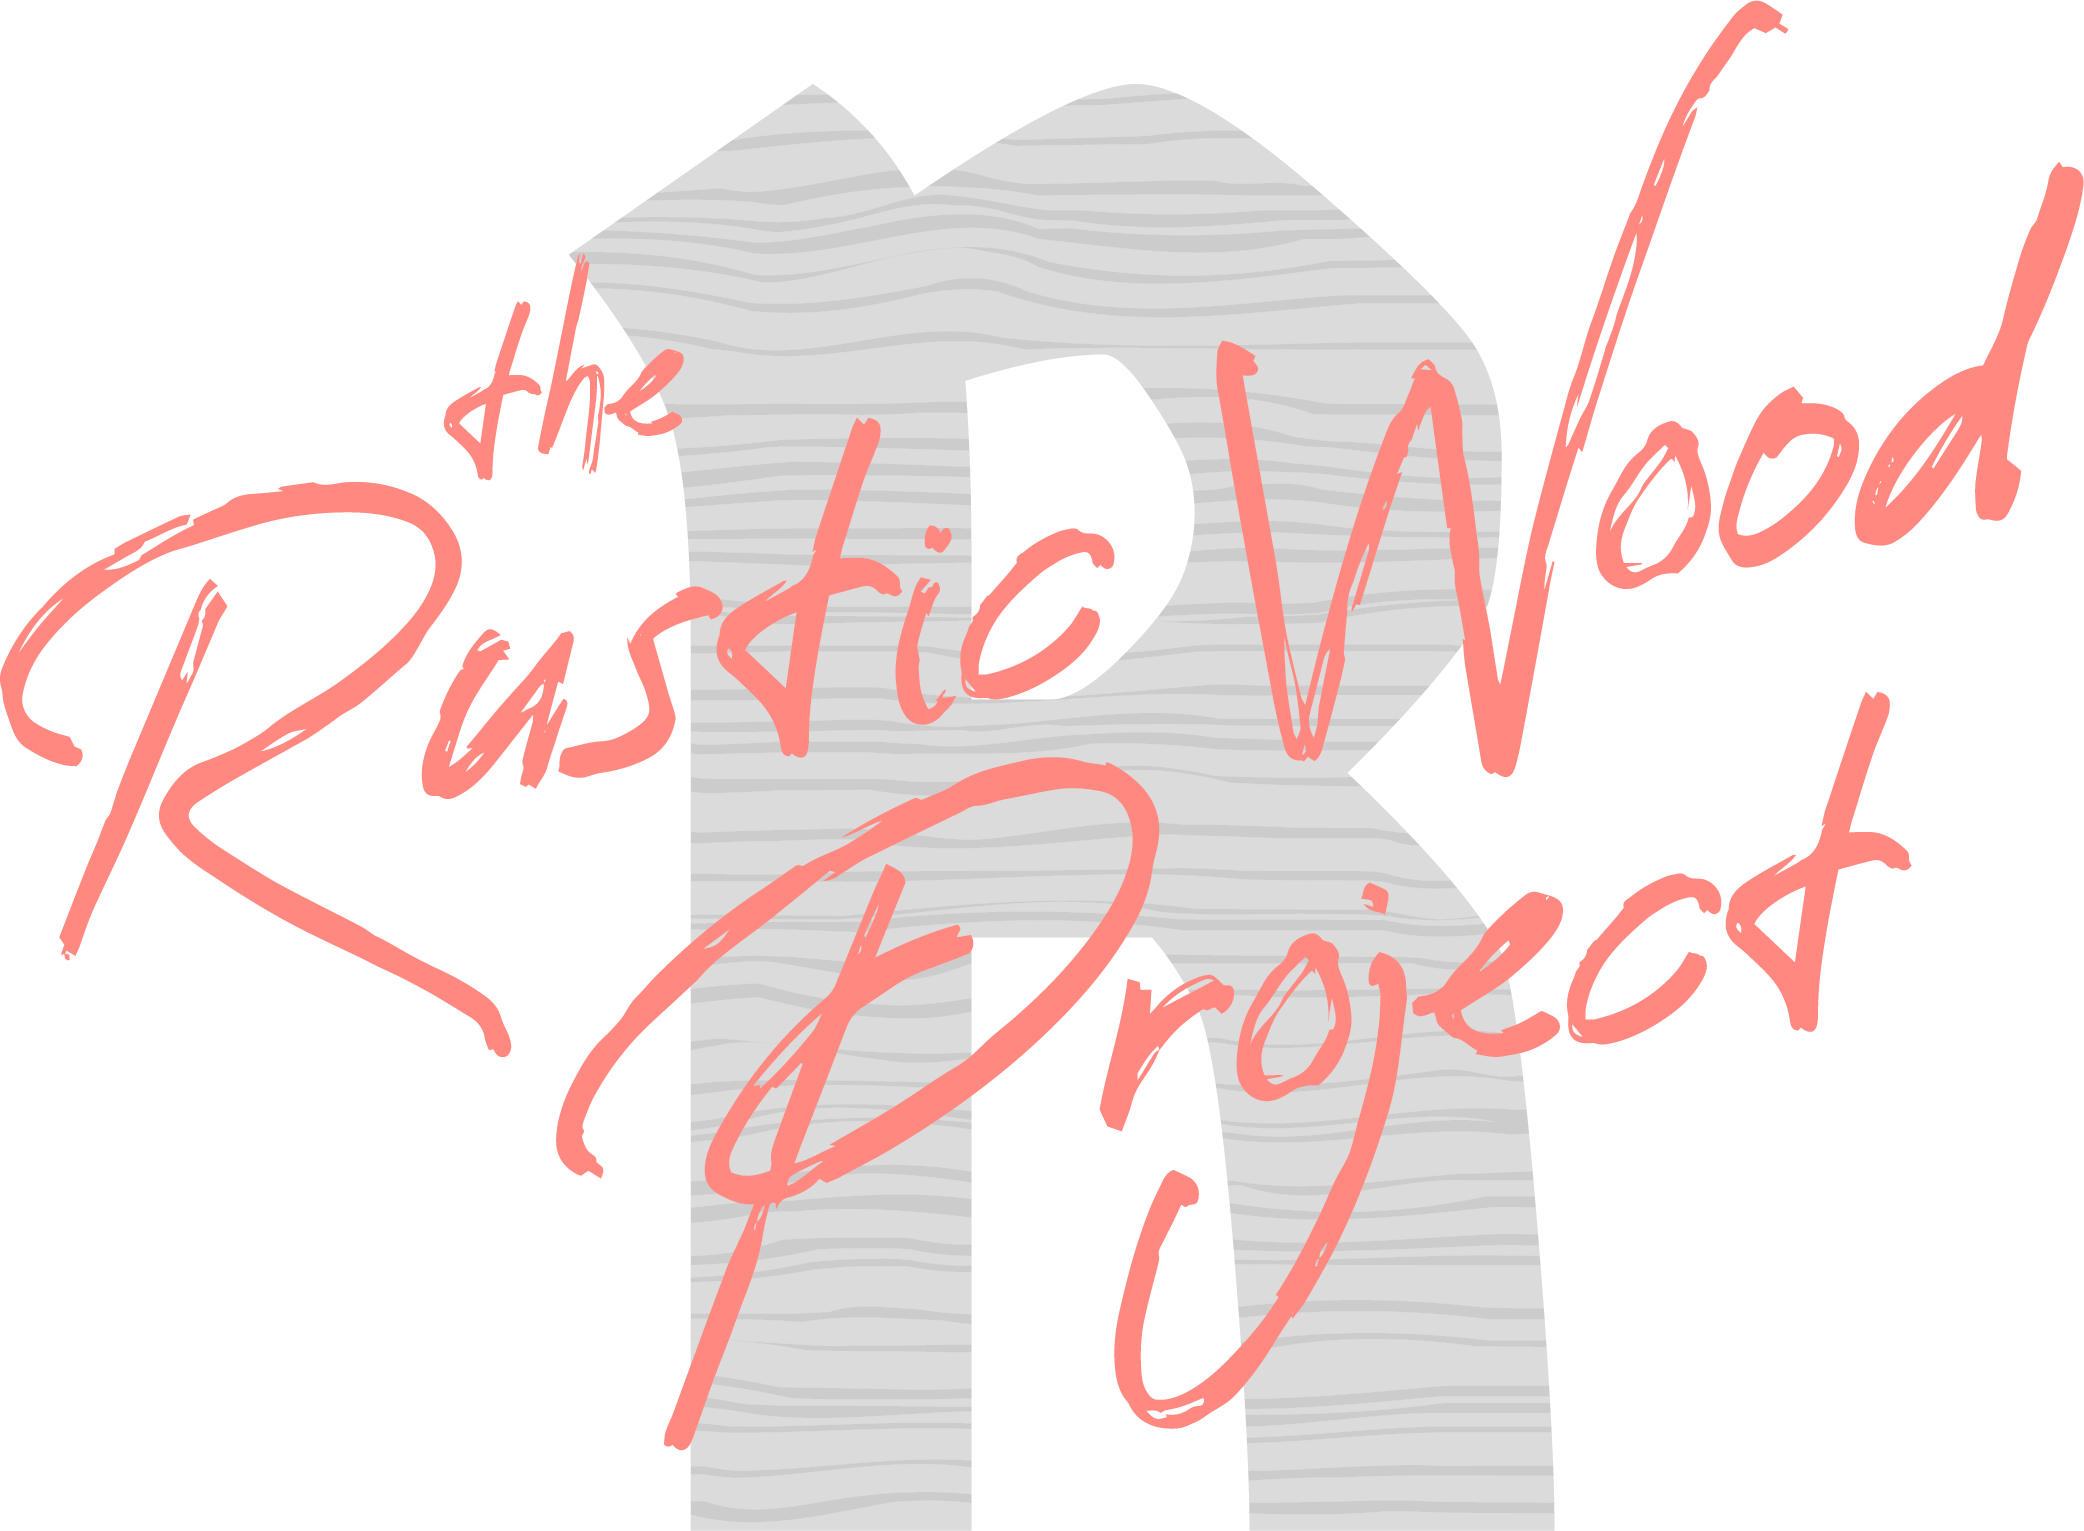 the-rustic-wood-project-logo.png